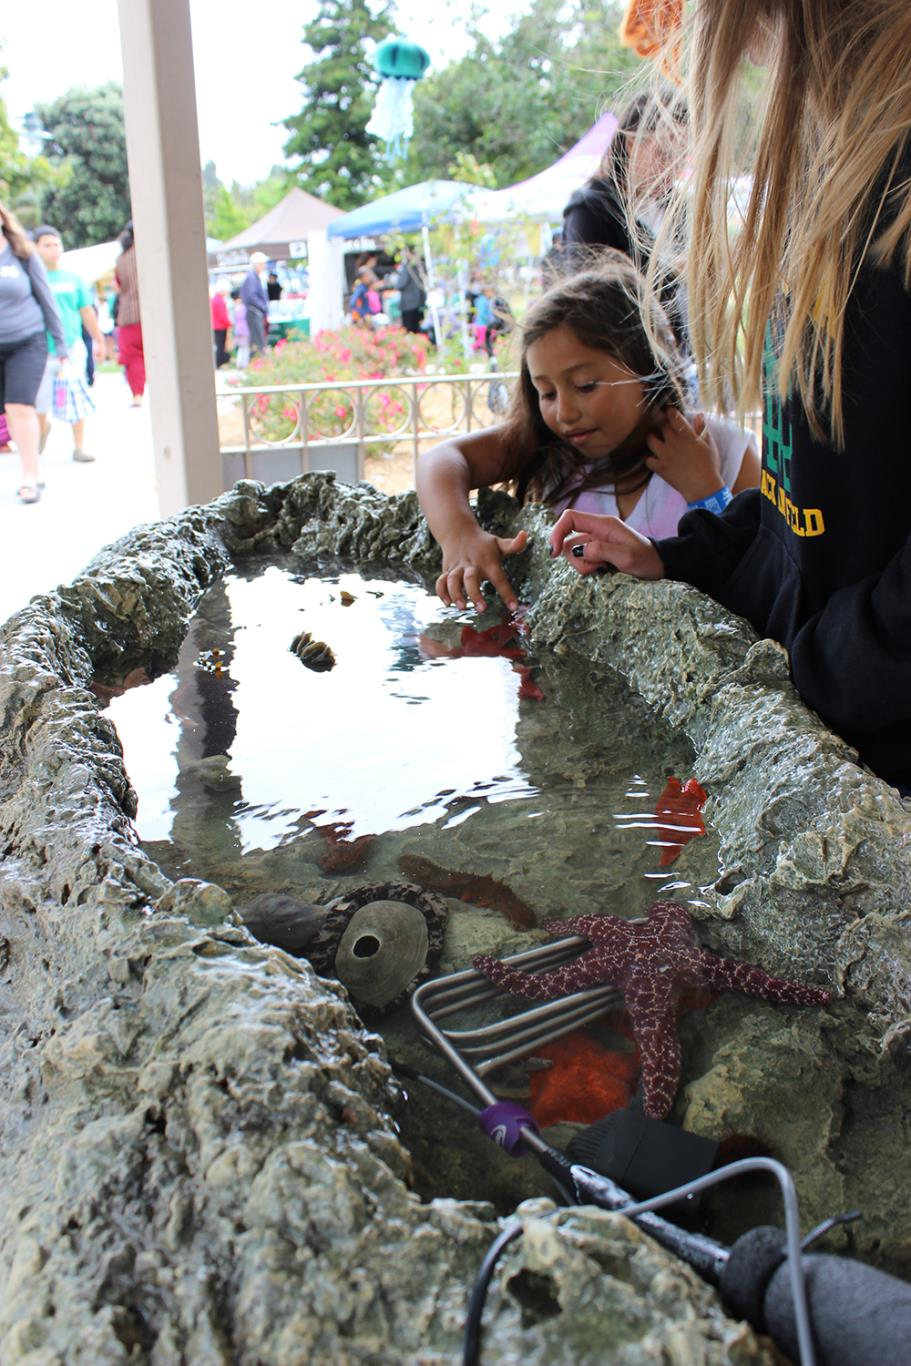 Touch Tank at Earth Day